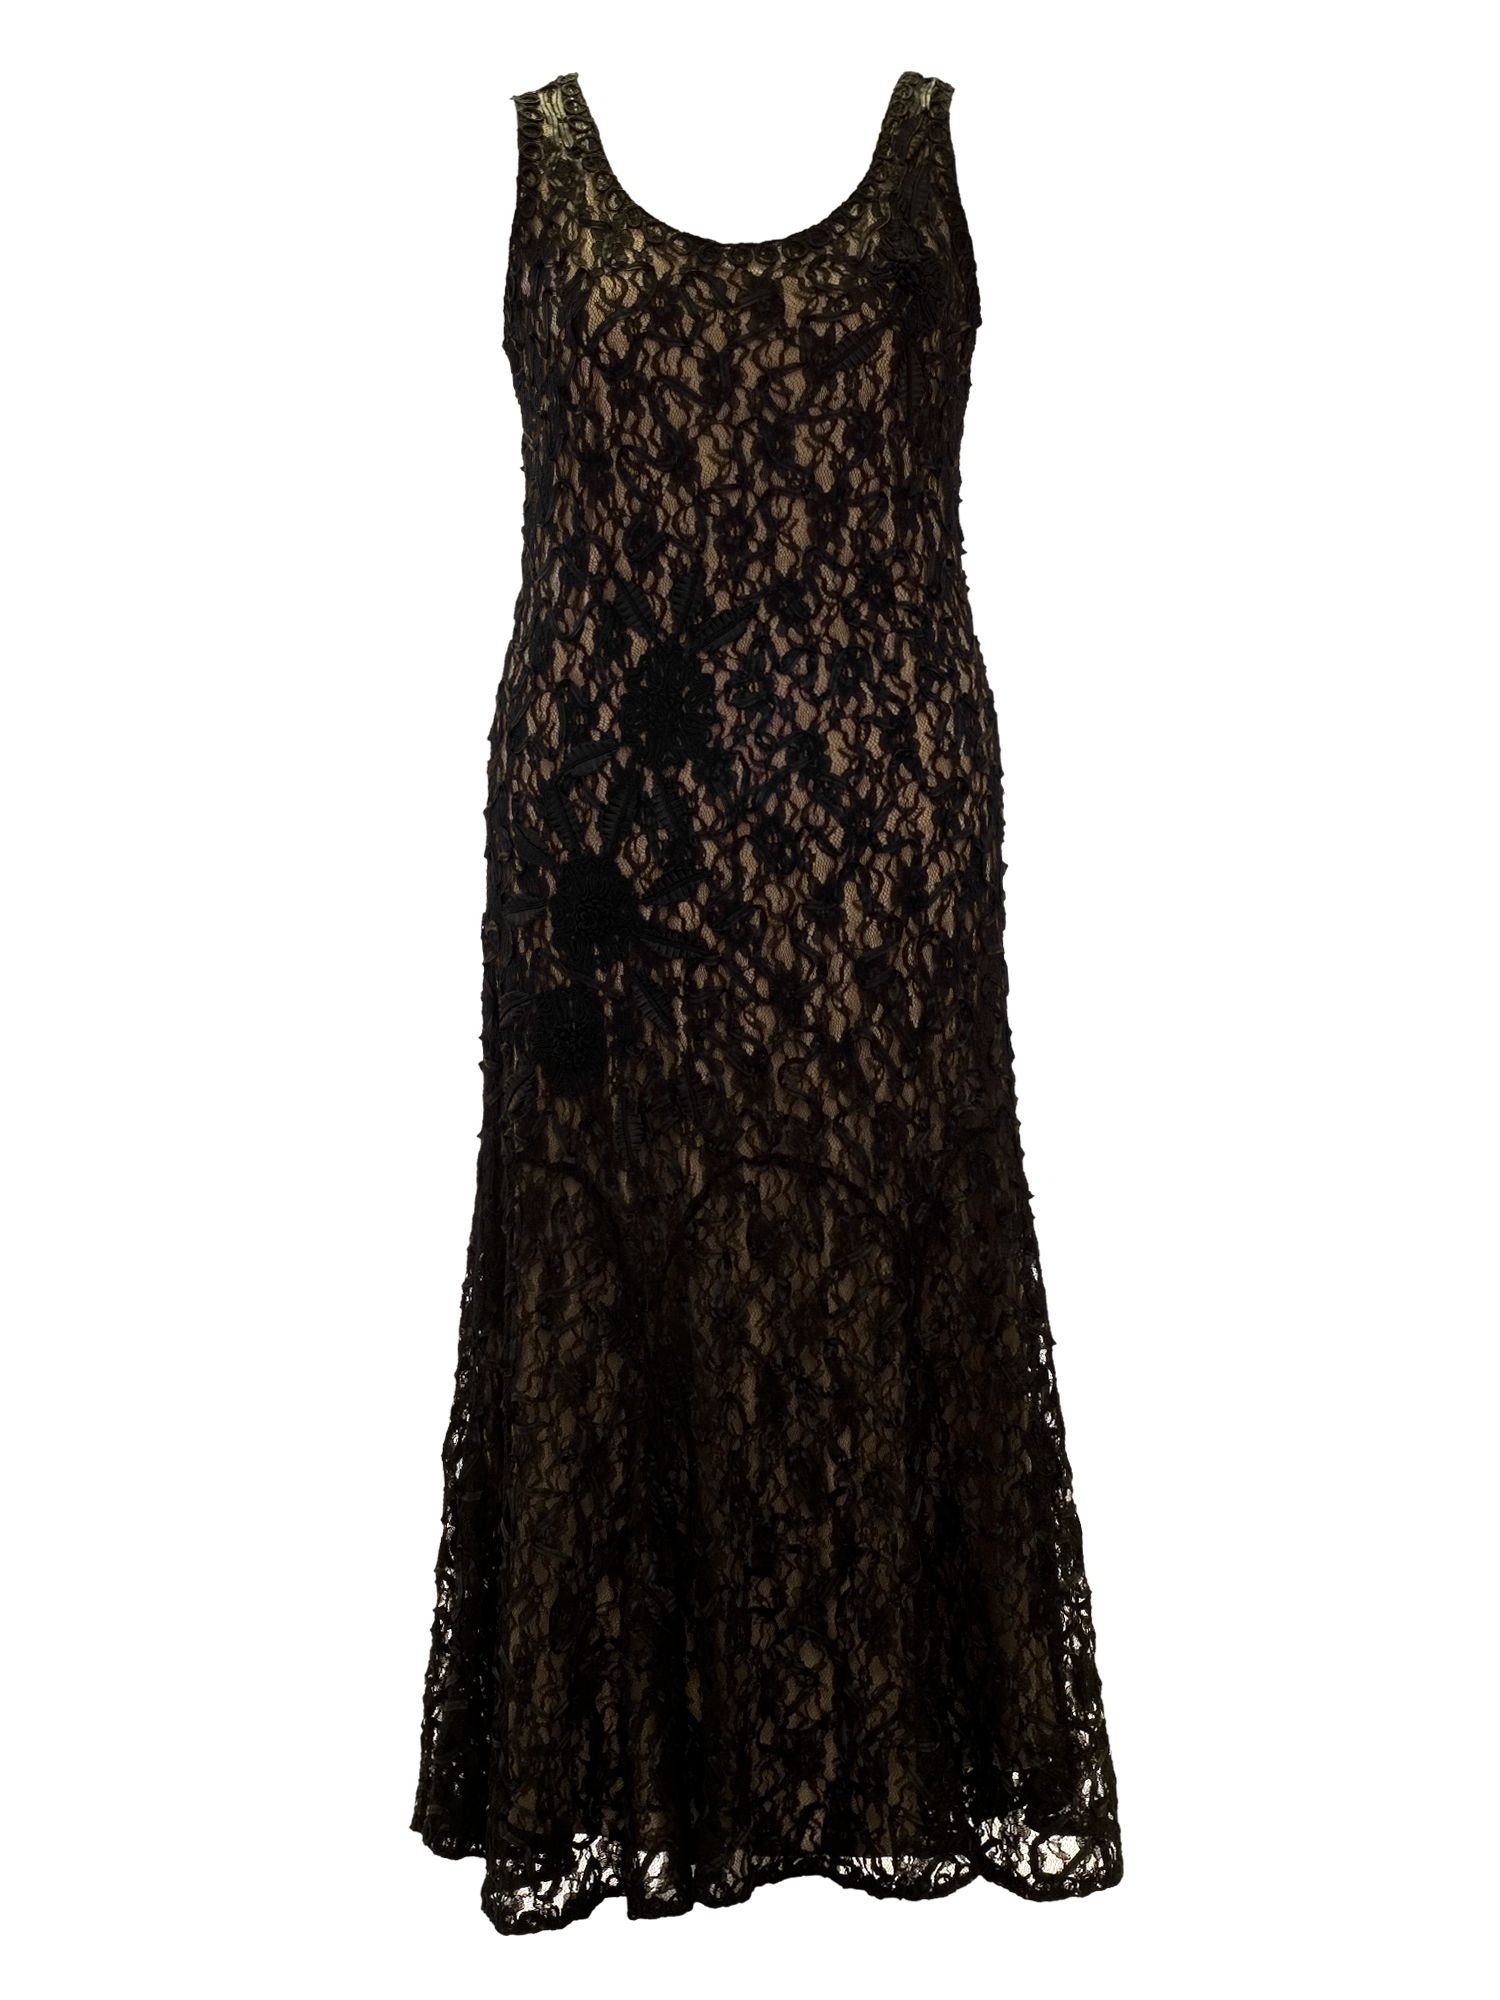 Lace cornelli embroidered dress with champagne li